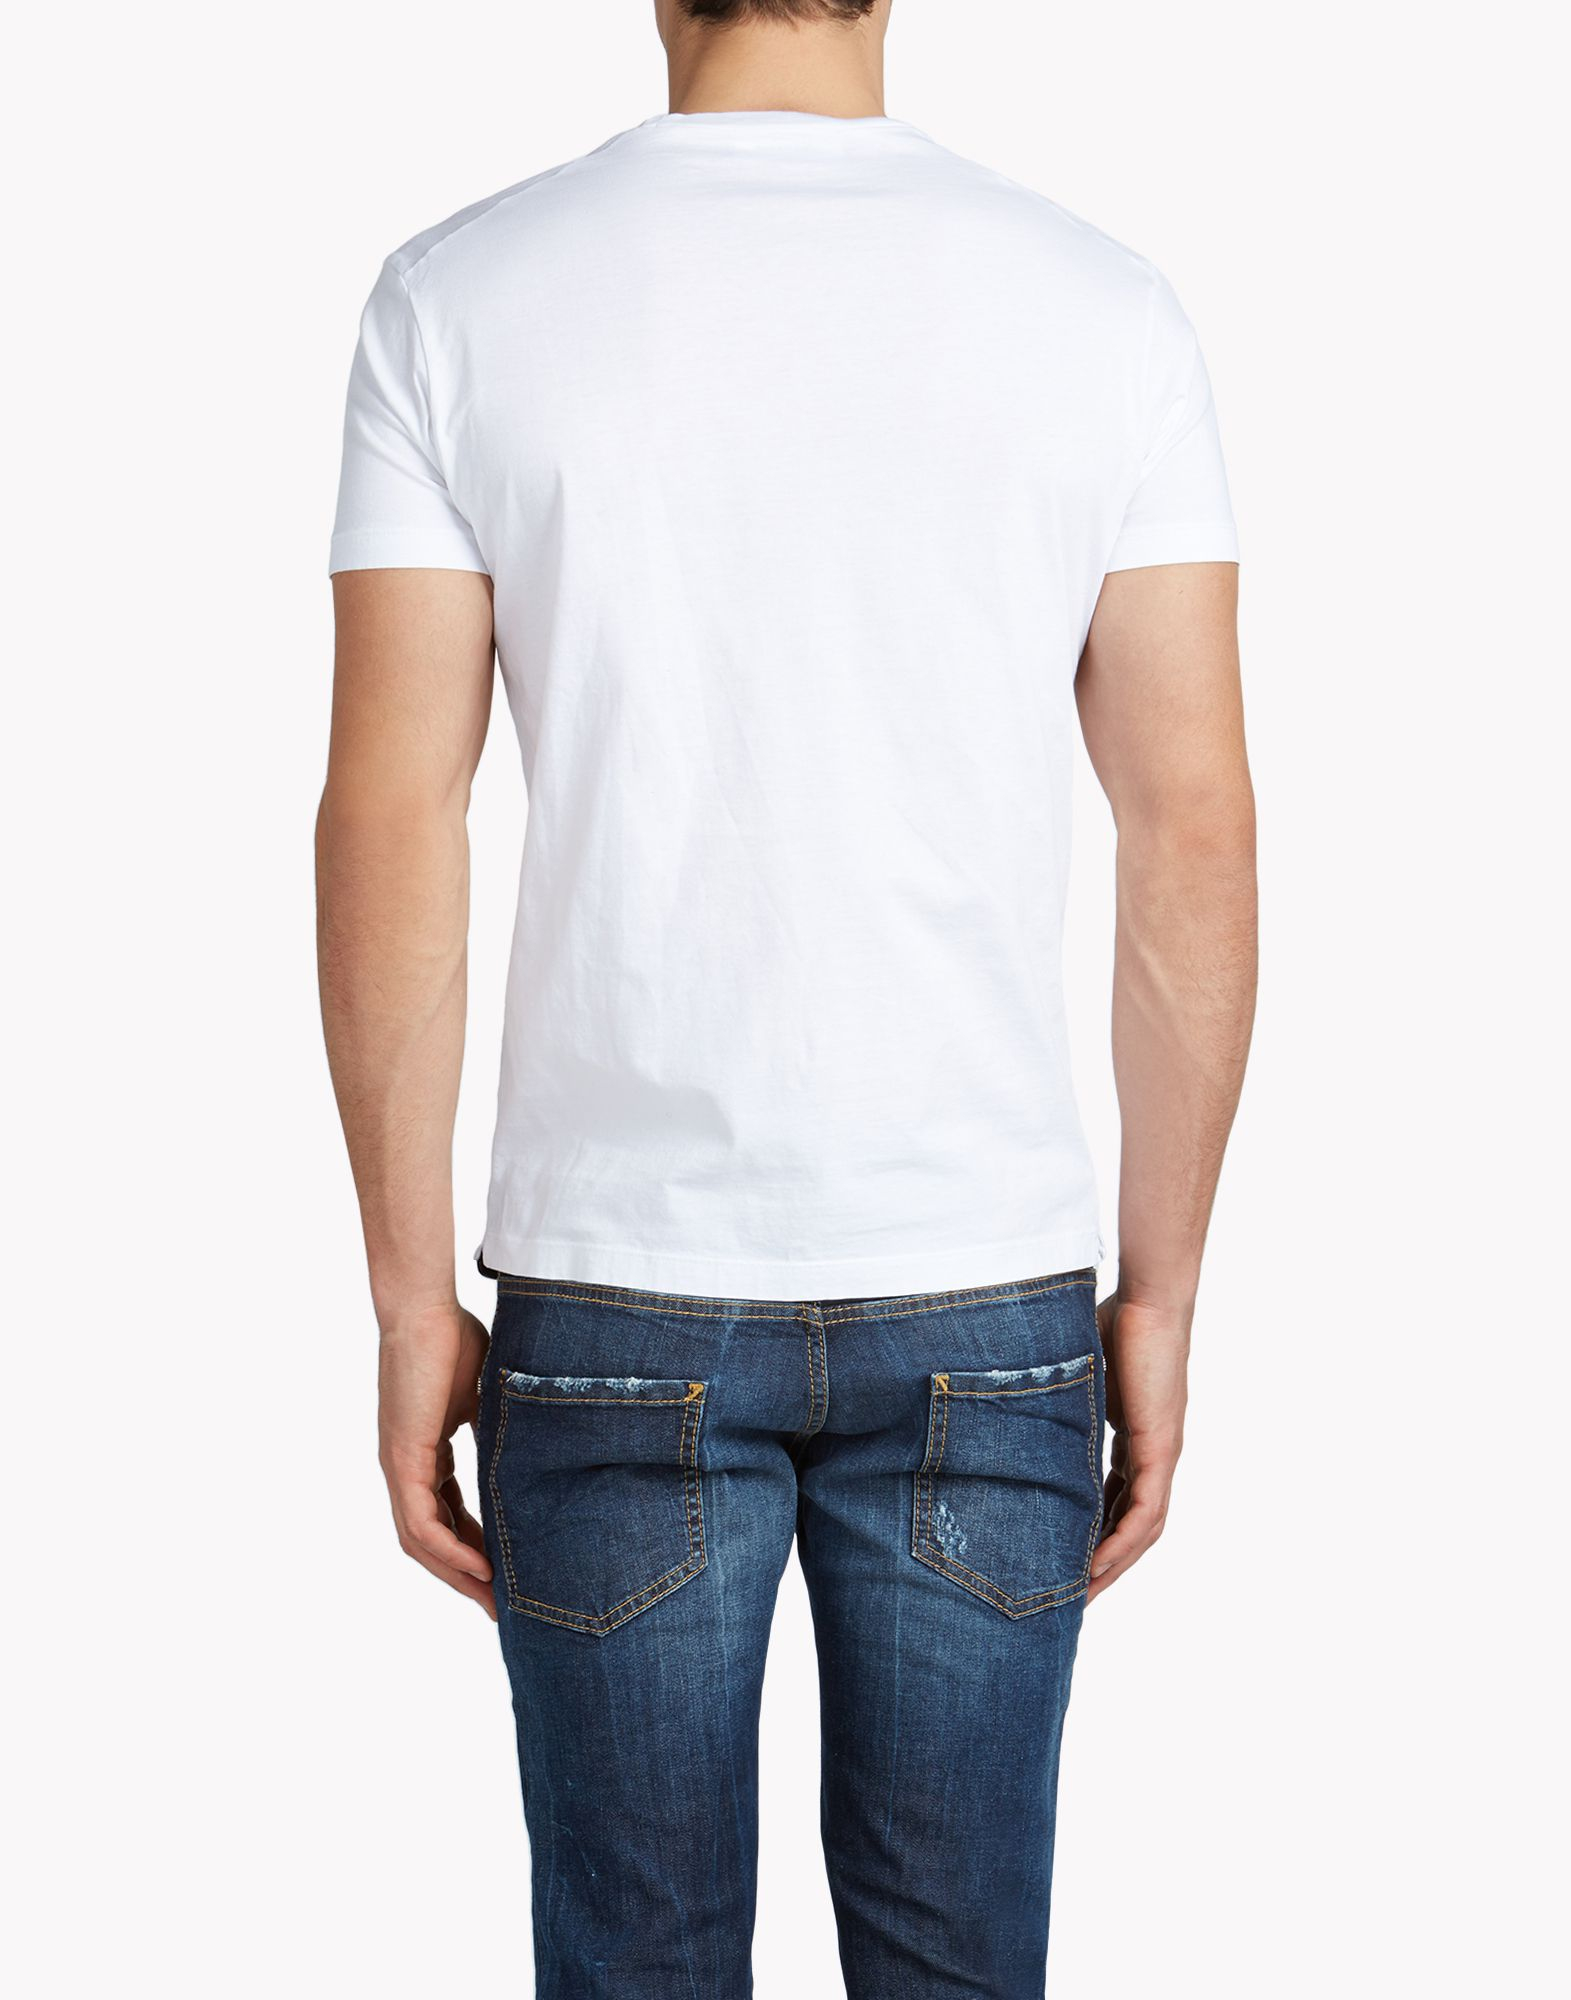 Dsquared t shirt in white for men lyst for Lands end logo shirts